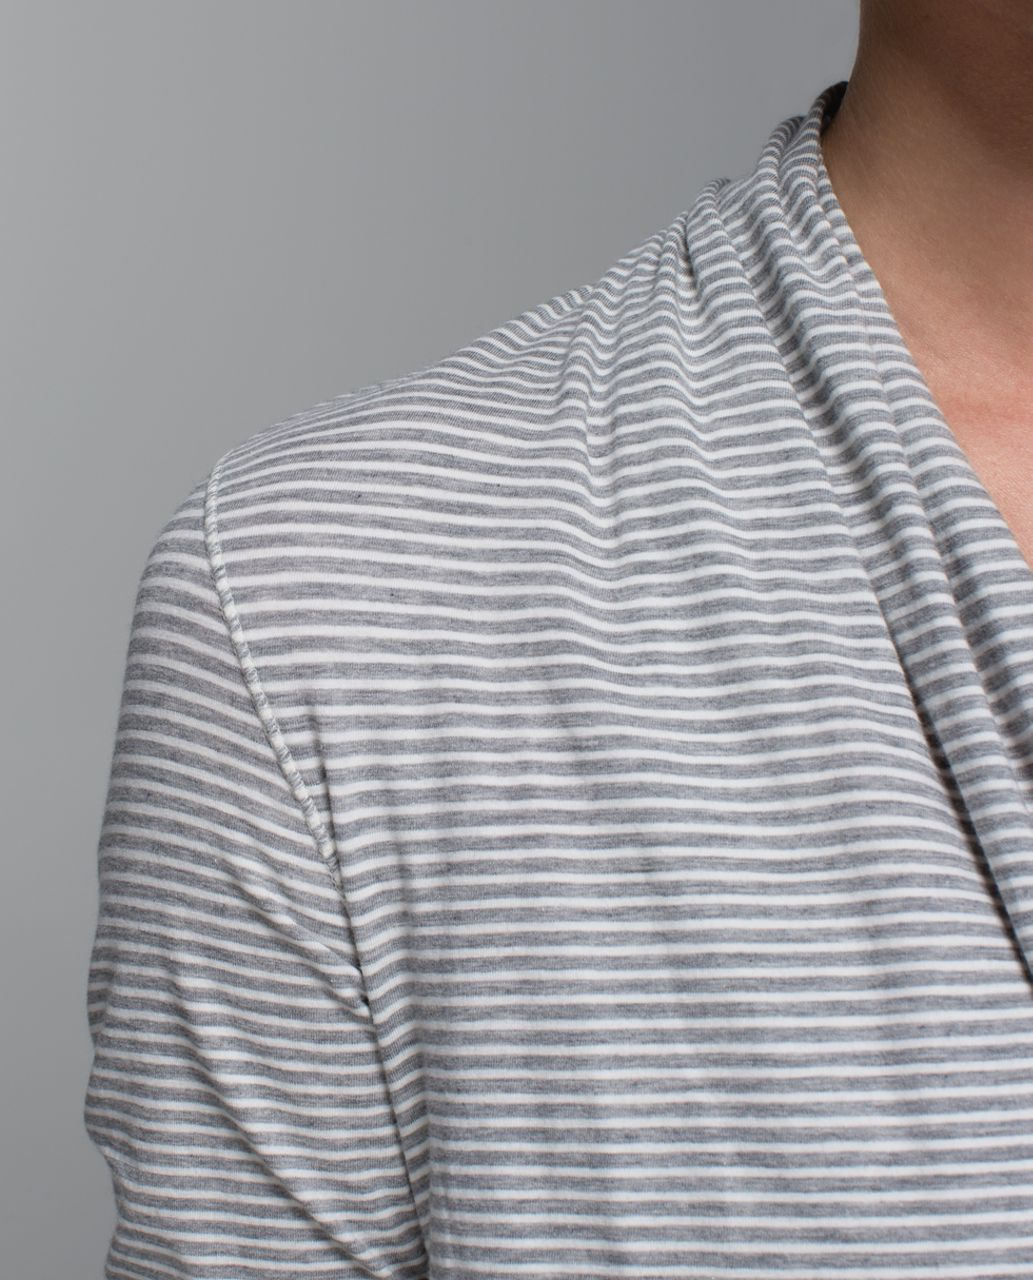 Lululemon Radiant Long Sleeve - Hyper Stripe Heathered Medium Grey Ghost